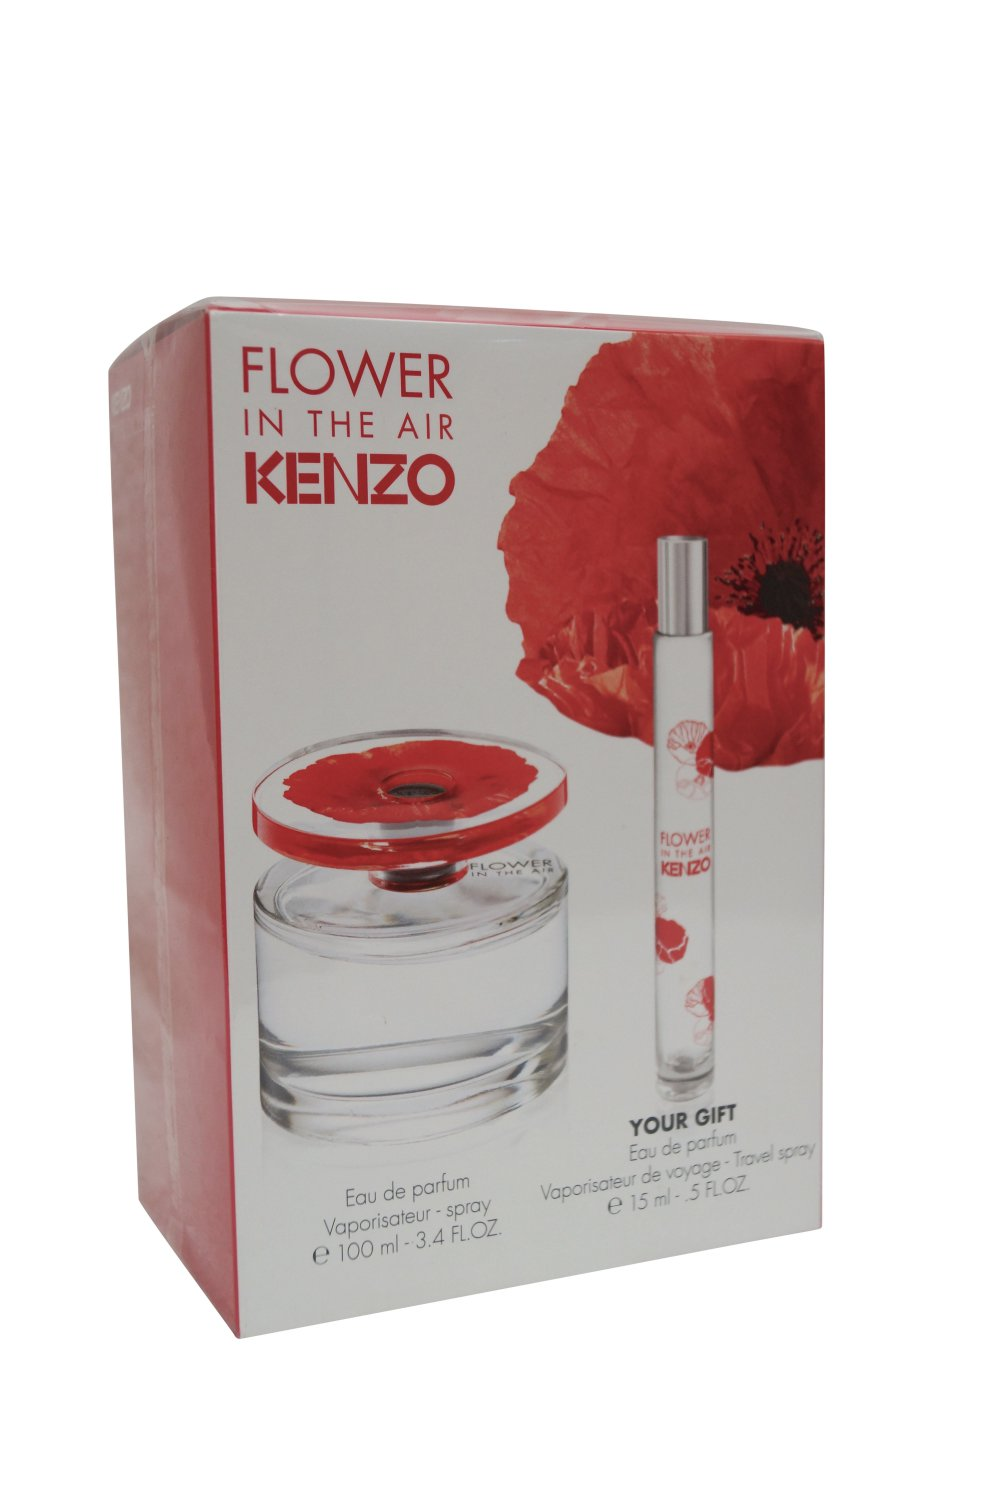 Kenzo Flower in the Air EDP Set, 100 ml.